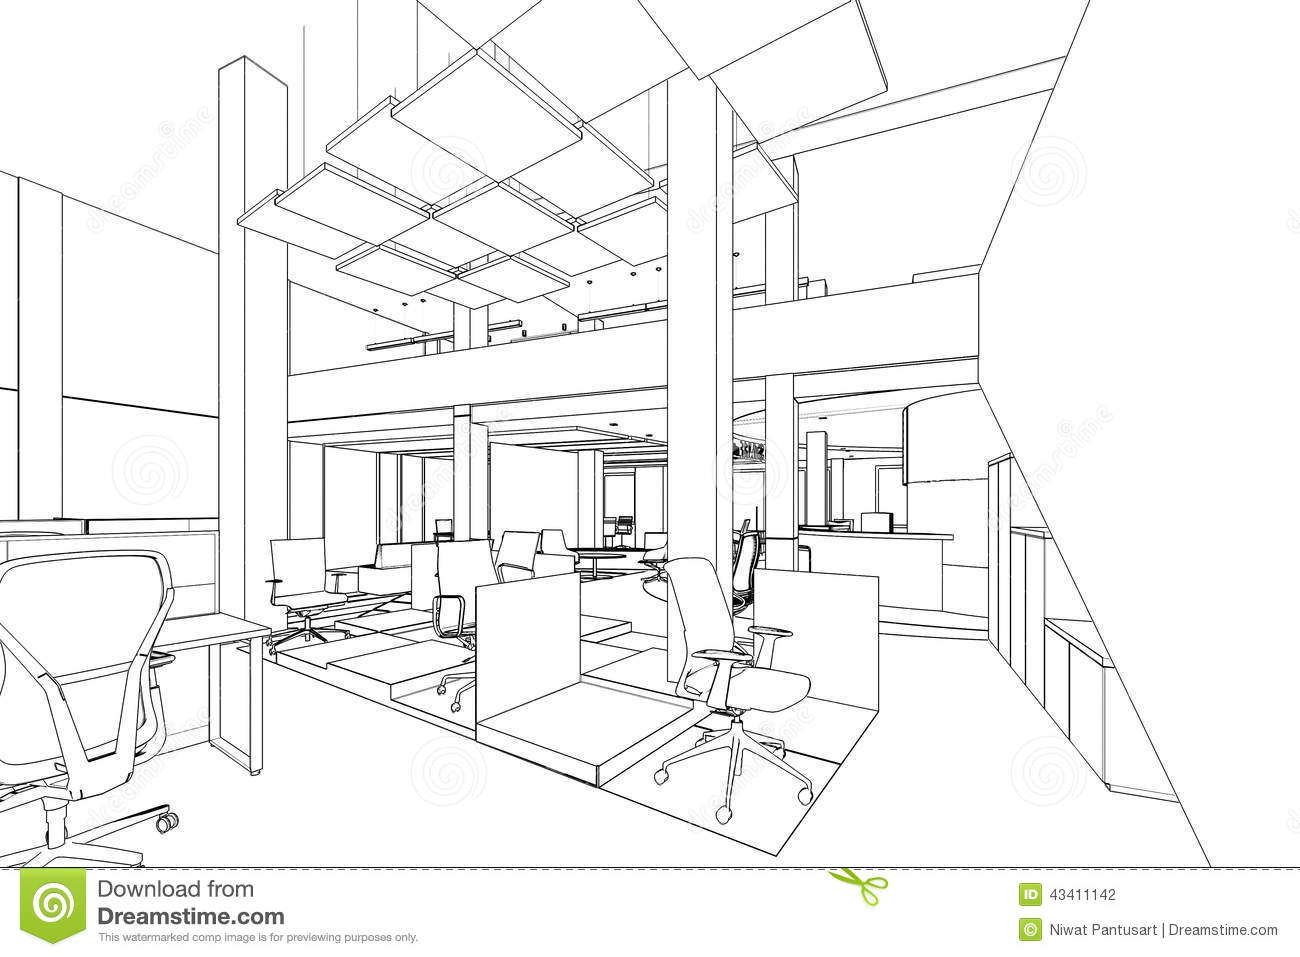 Outline sketch of a interior office area stock for Office design drawing samples